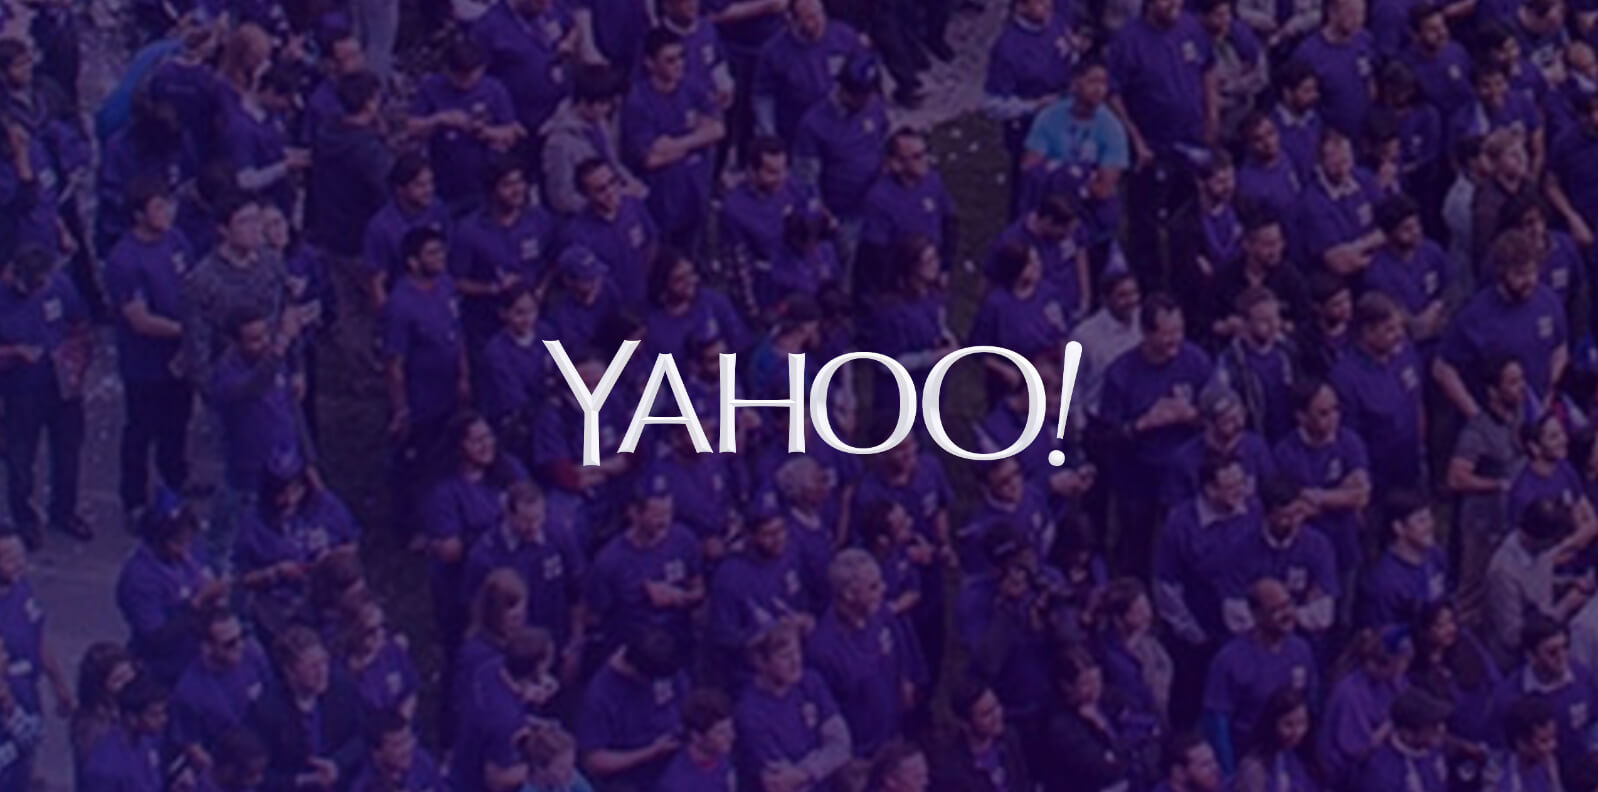 Justice Department indicts four in connection with 2014 Yahoo hack (including two Russian security officers)